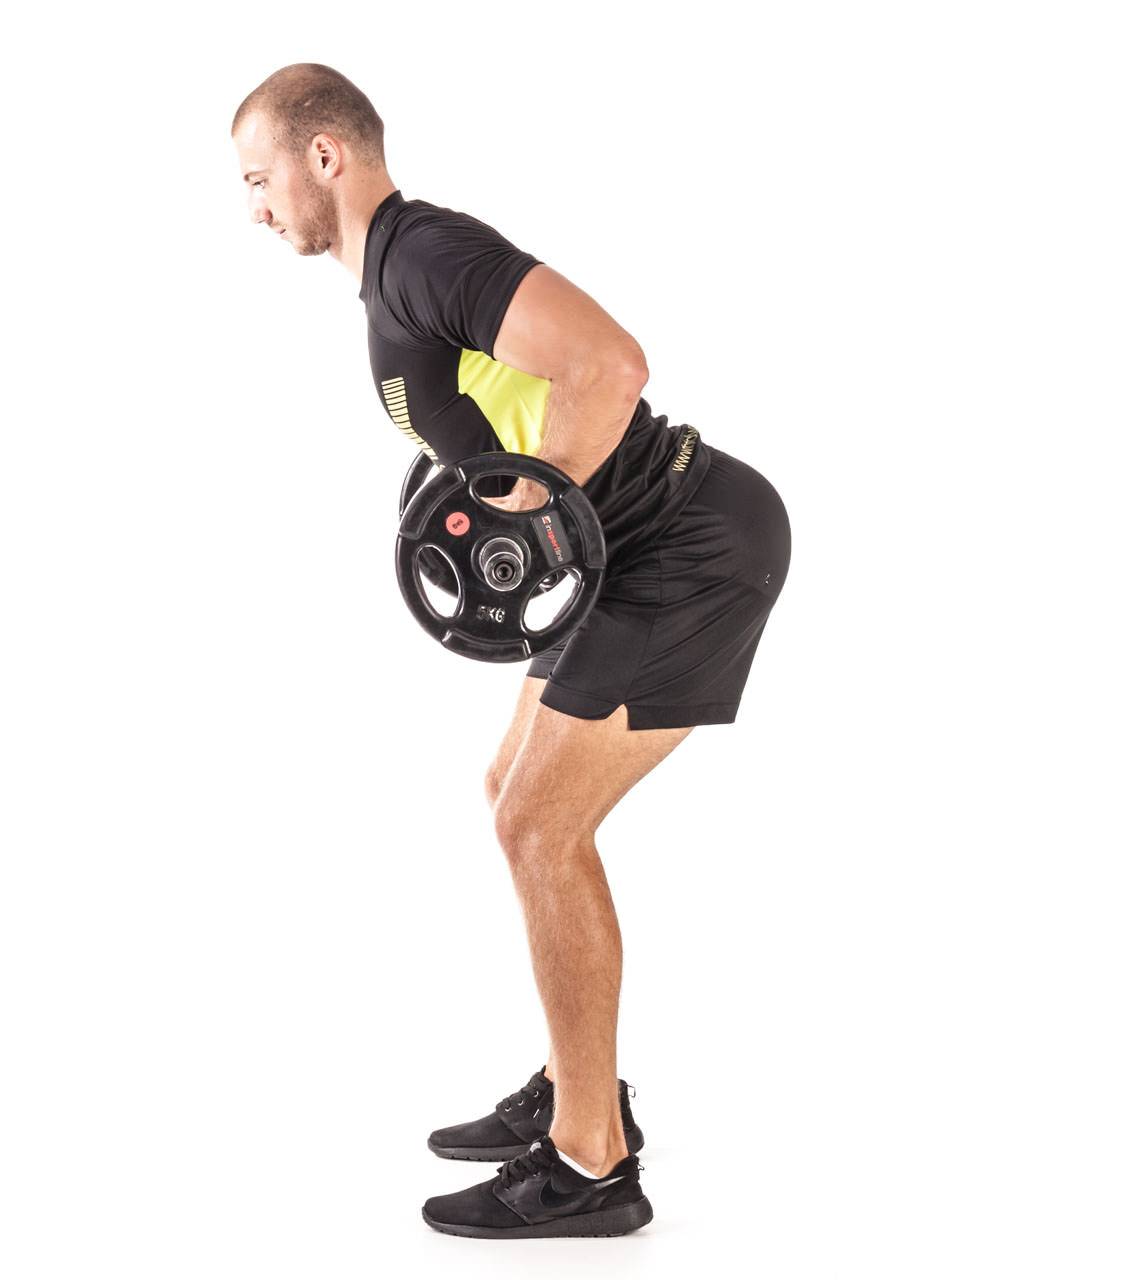 Bent Over Barbell Row frame #5